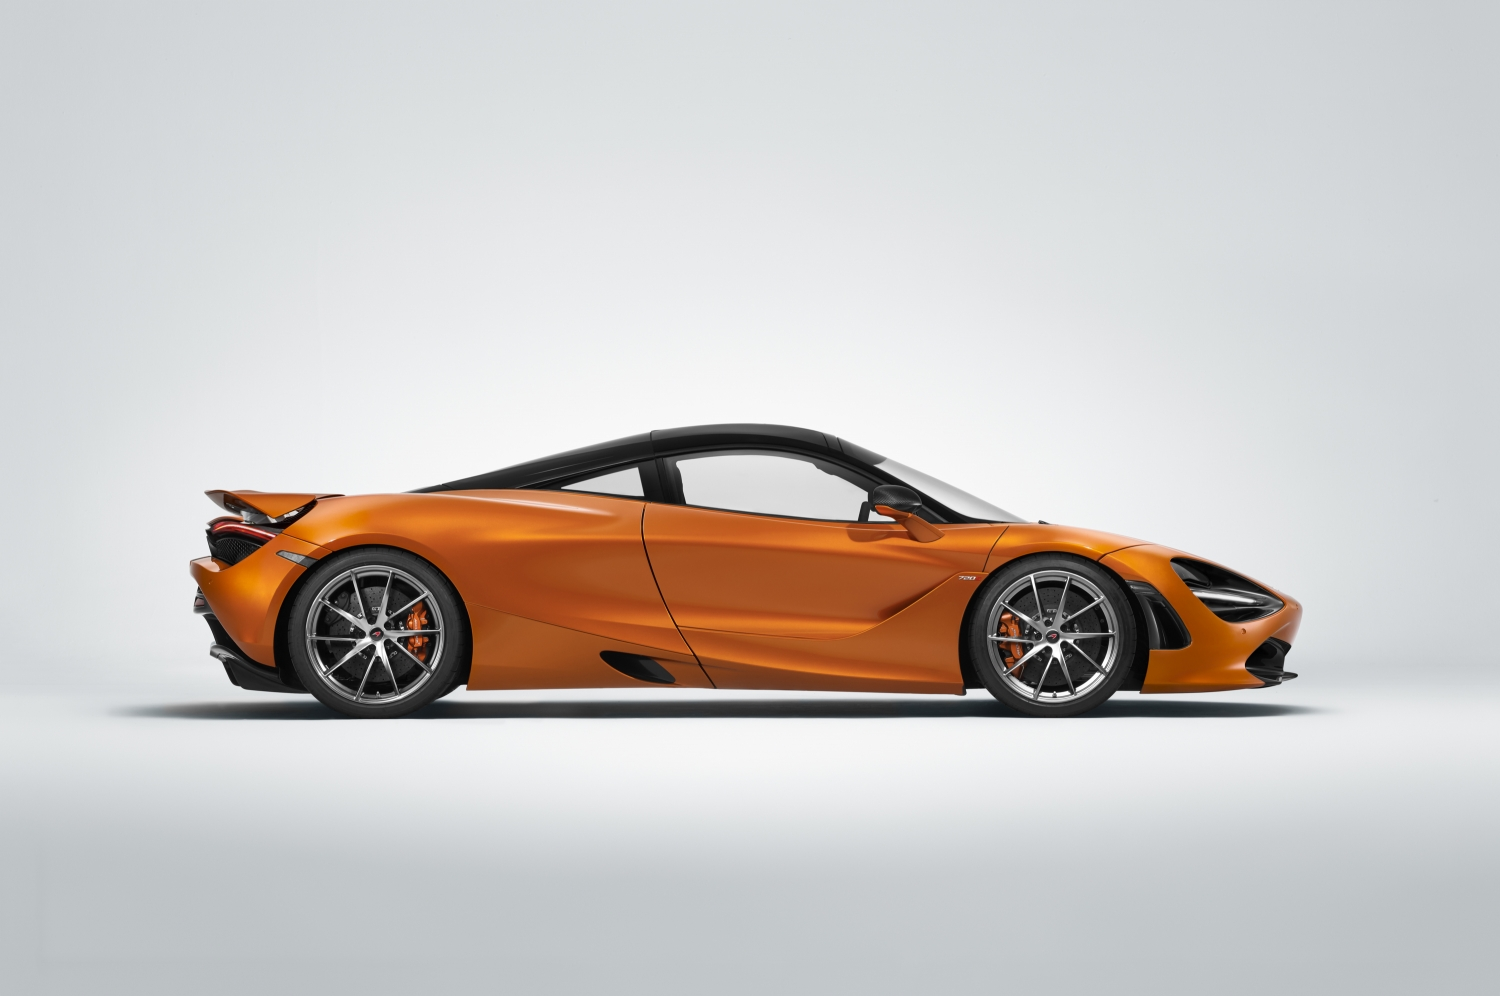 mclaren 720s wins beauty contest, named most beautiful supercar of